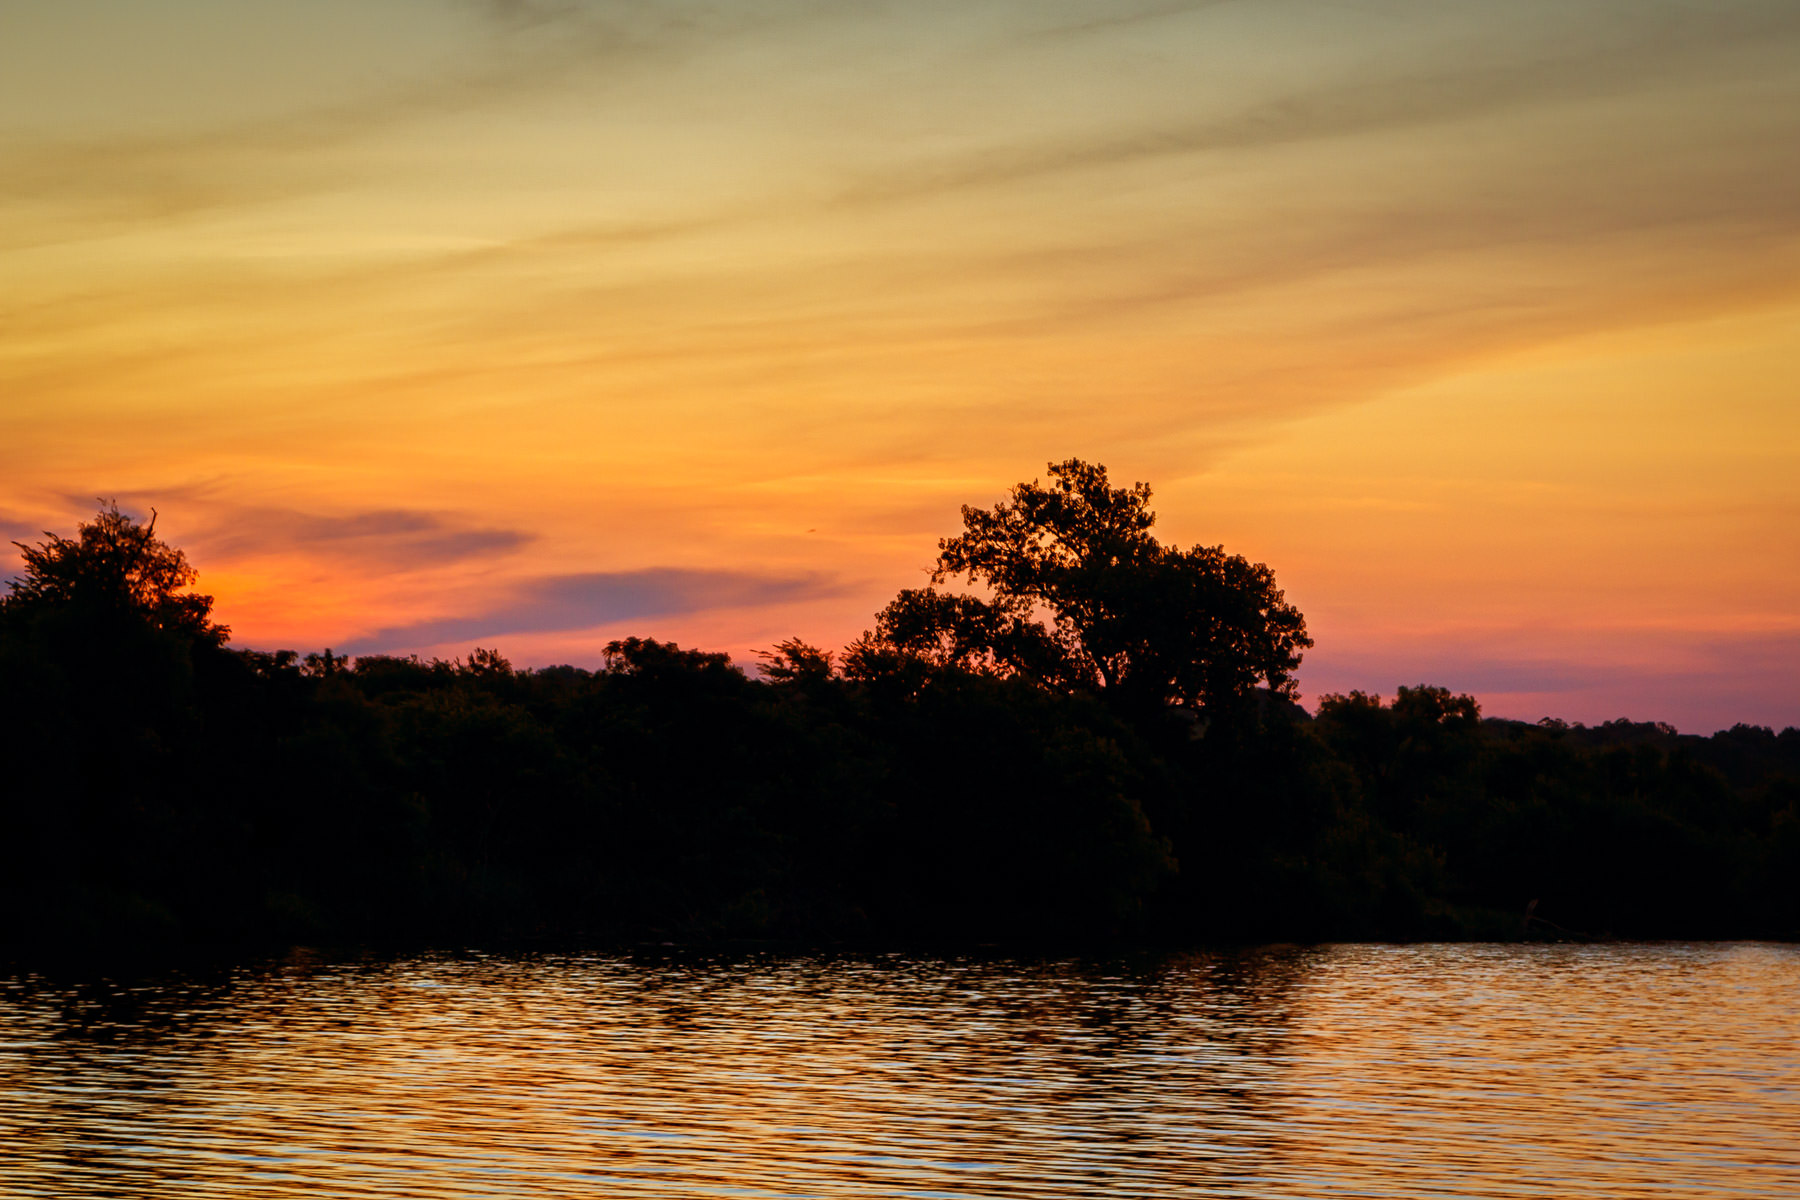 Trees on the shore of Dallas' White Rock Lake are silhouetted by the rising sun.